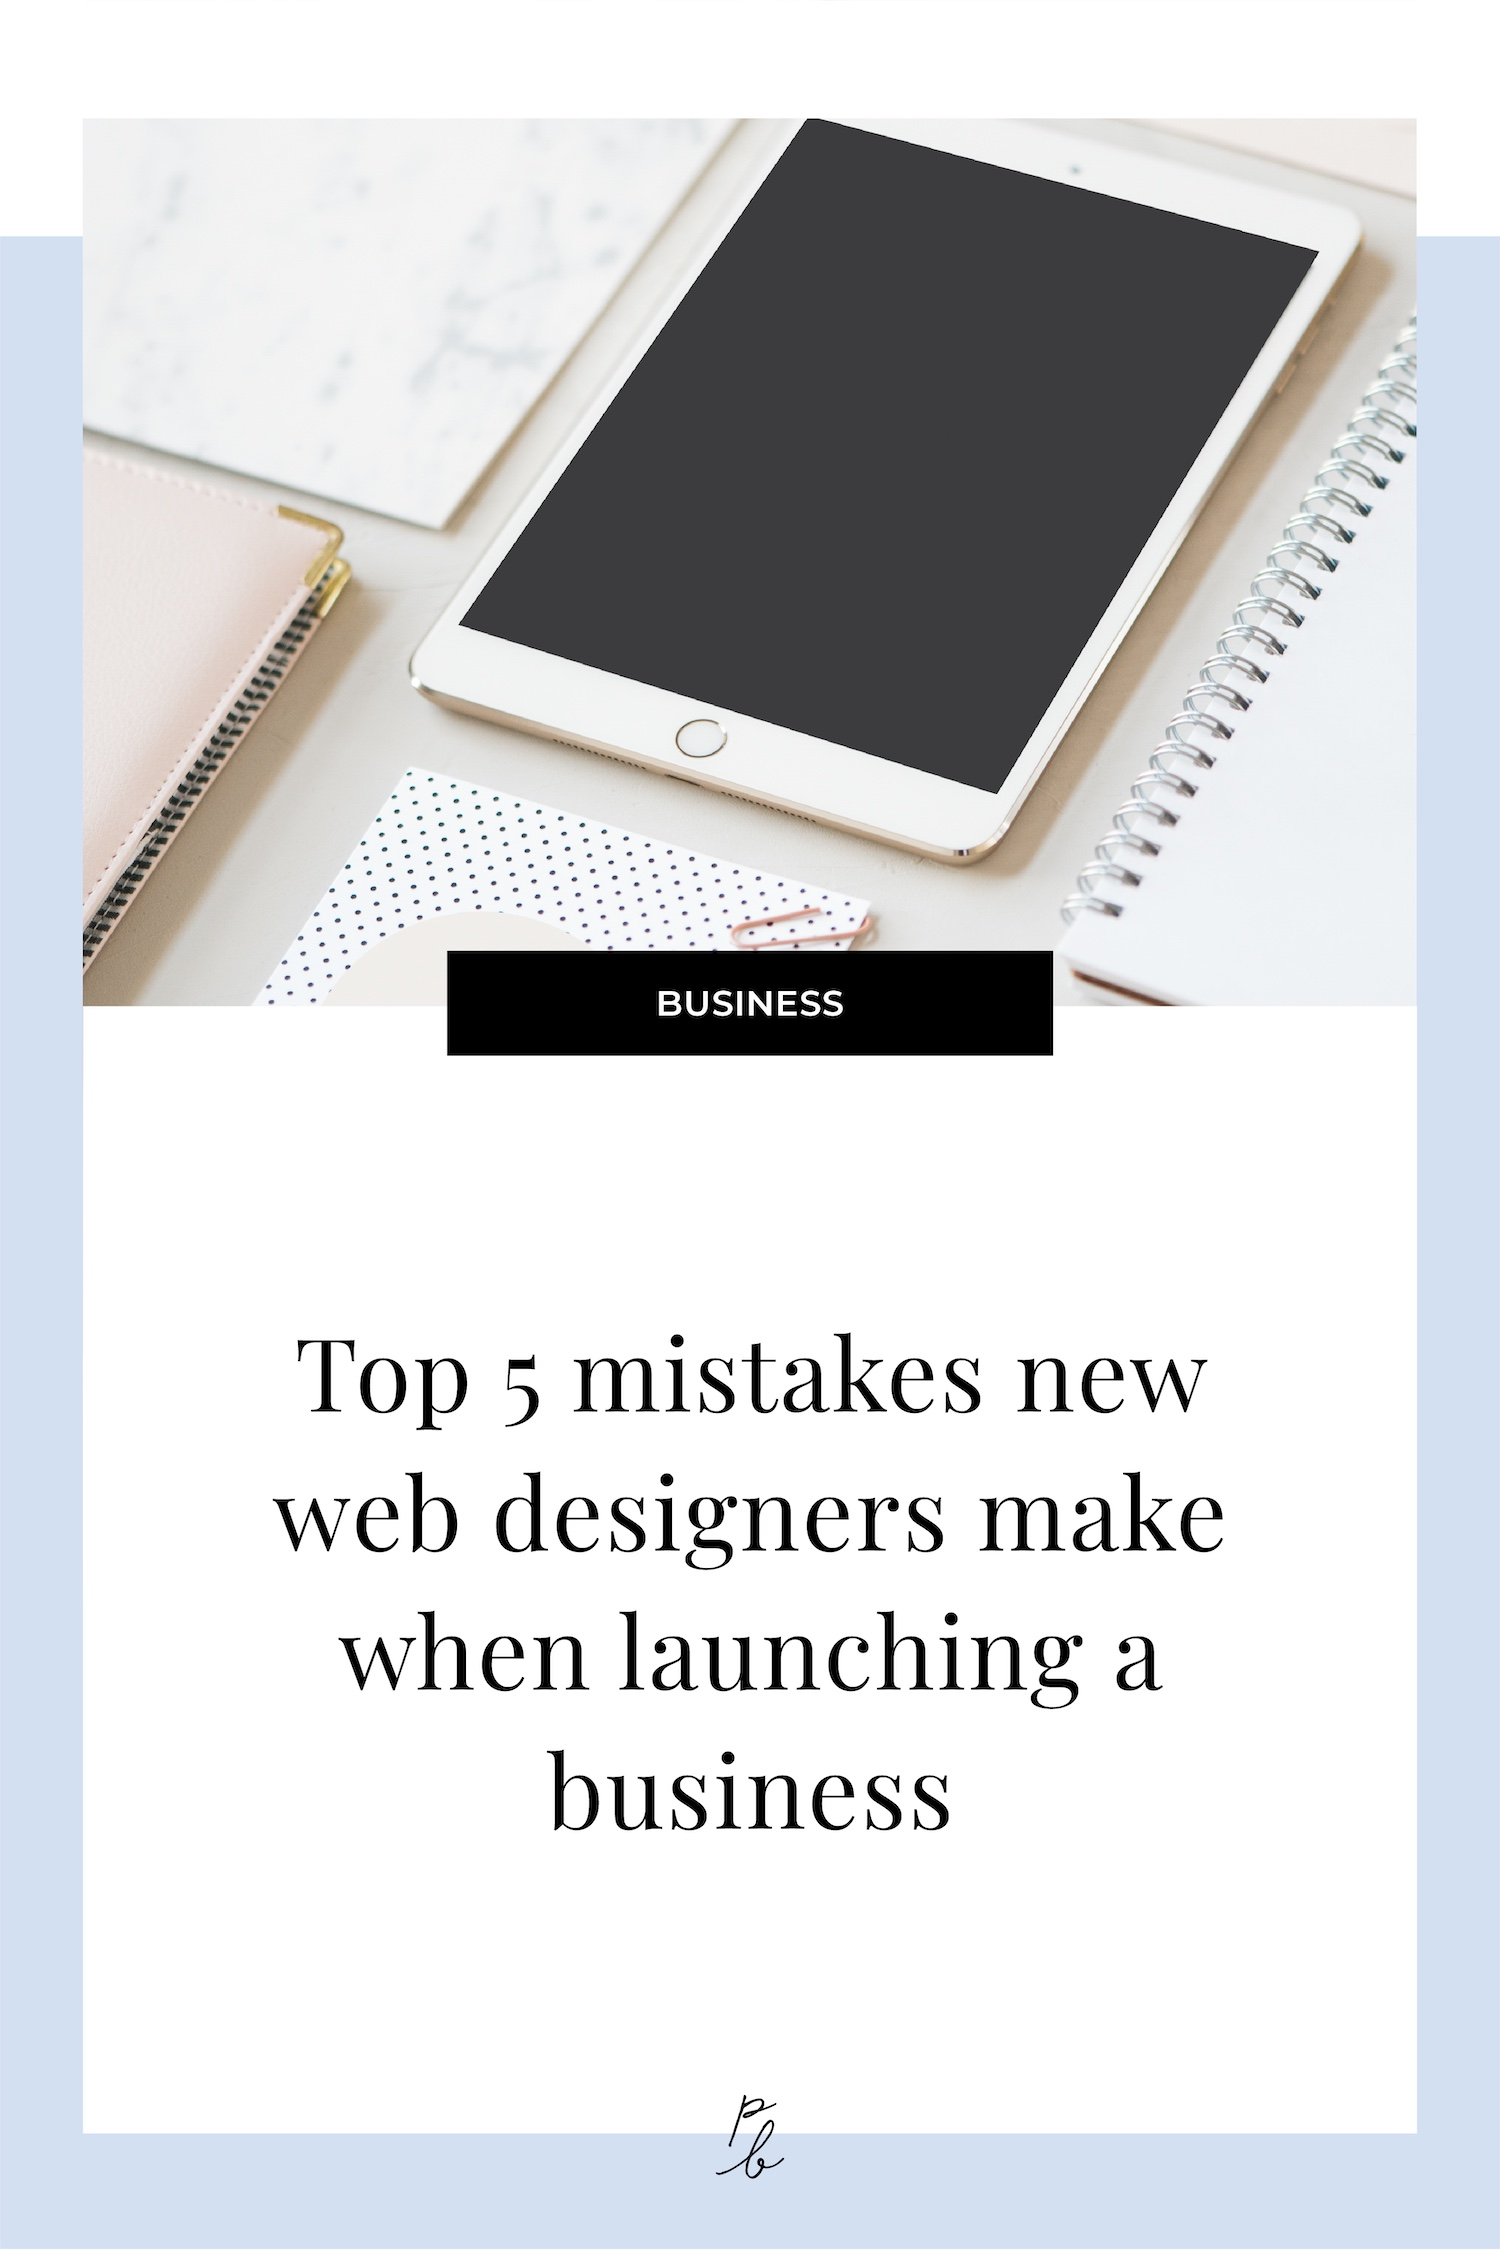 Top 5 mistakes new web designers make when launching a business.jpg